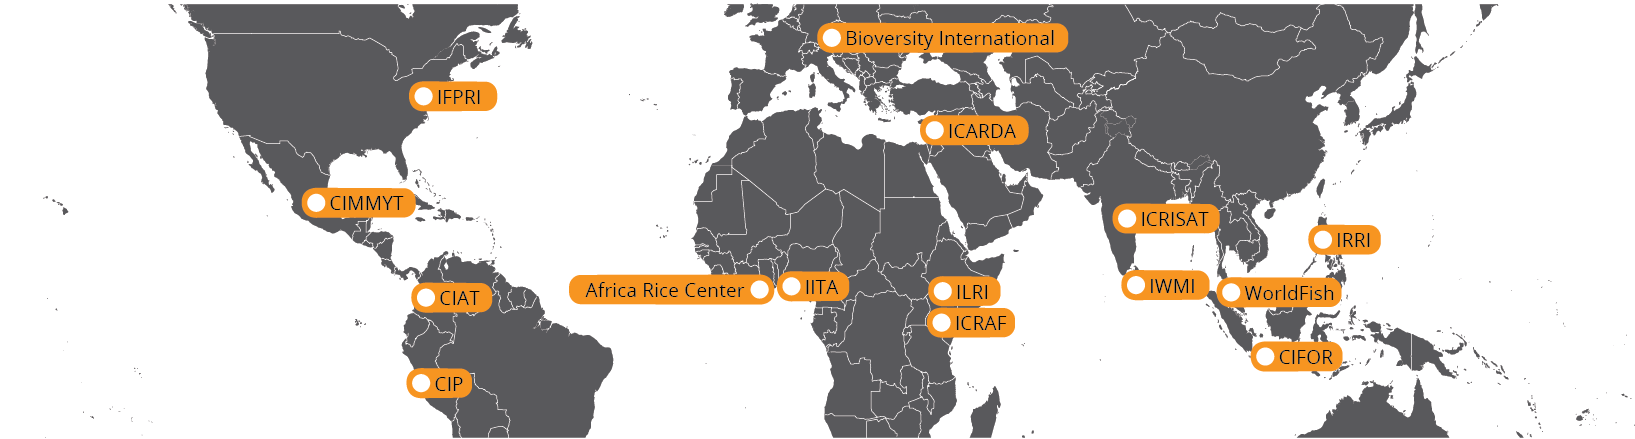 location of CGIAR centers